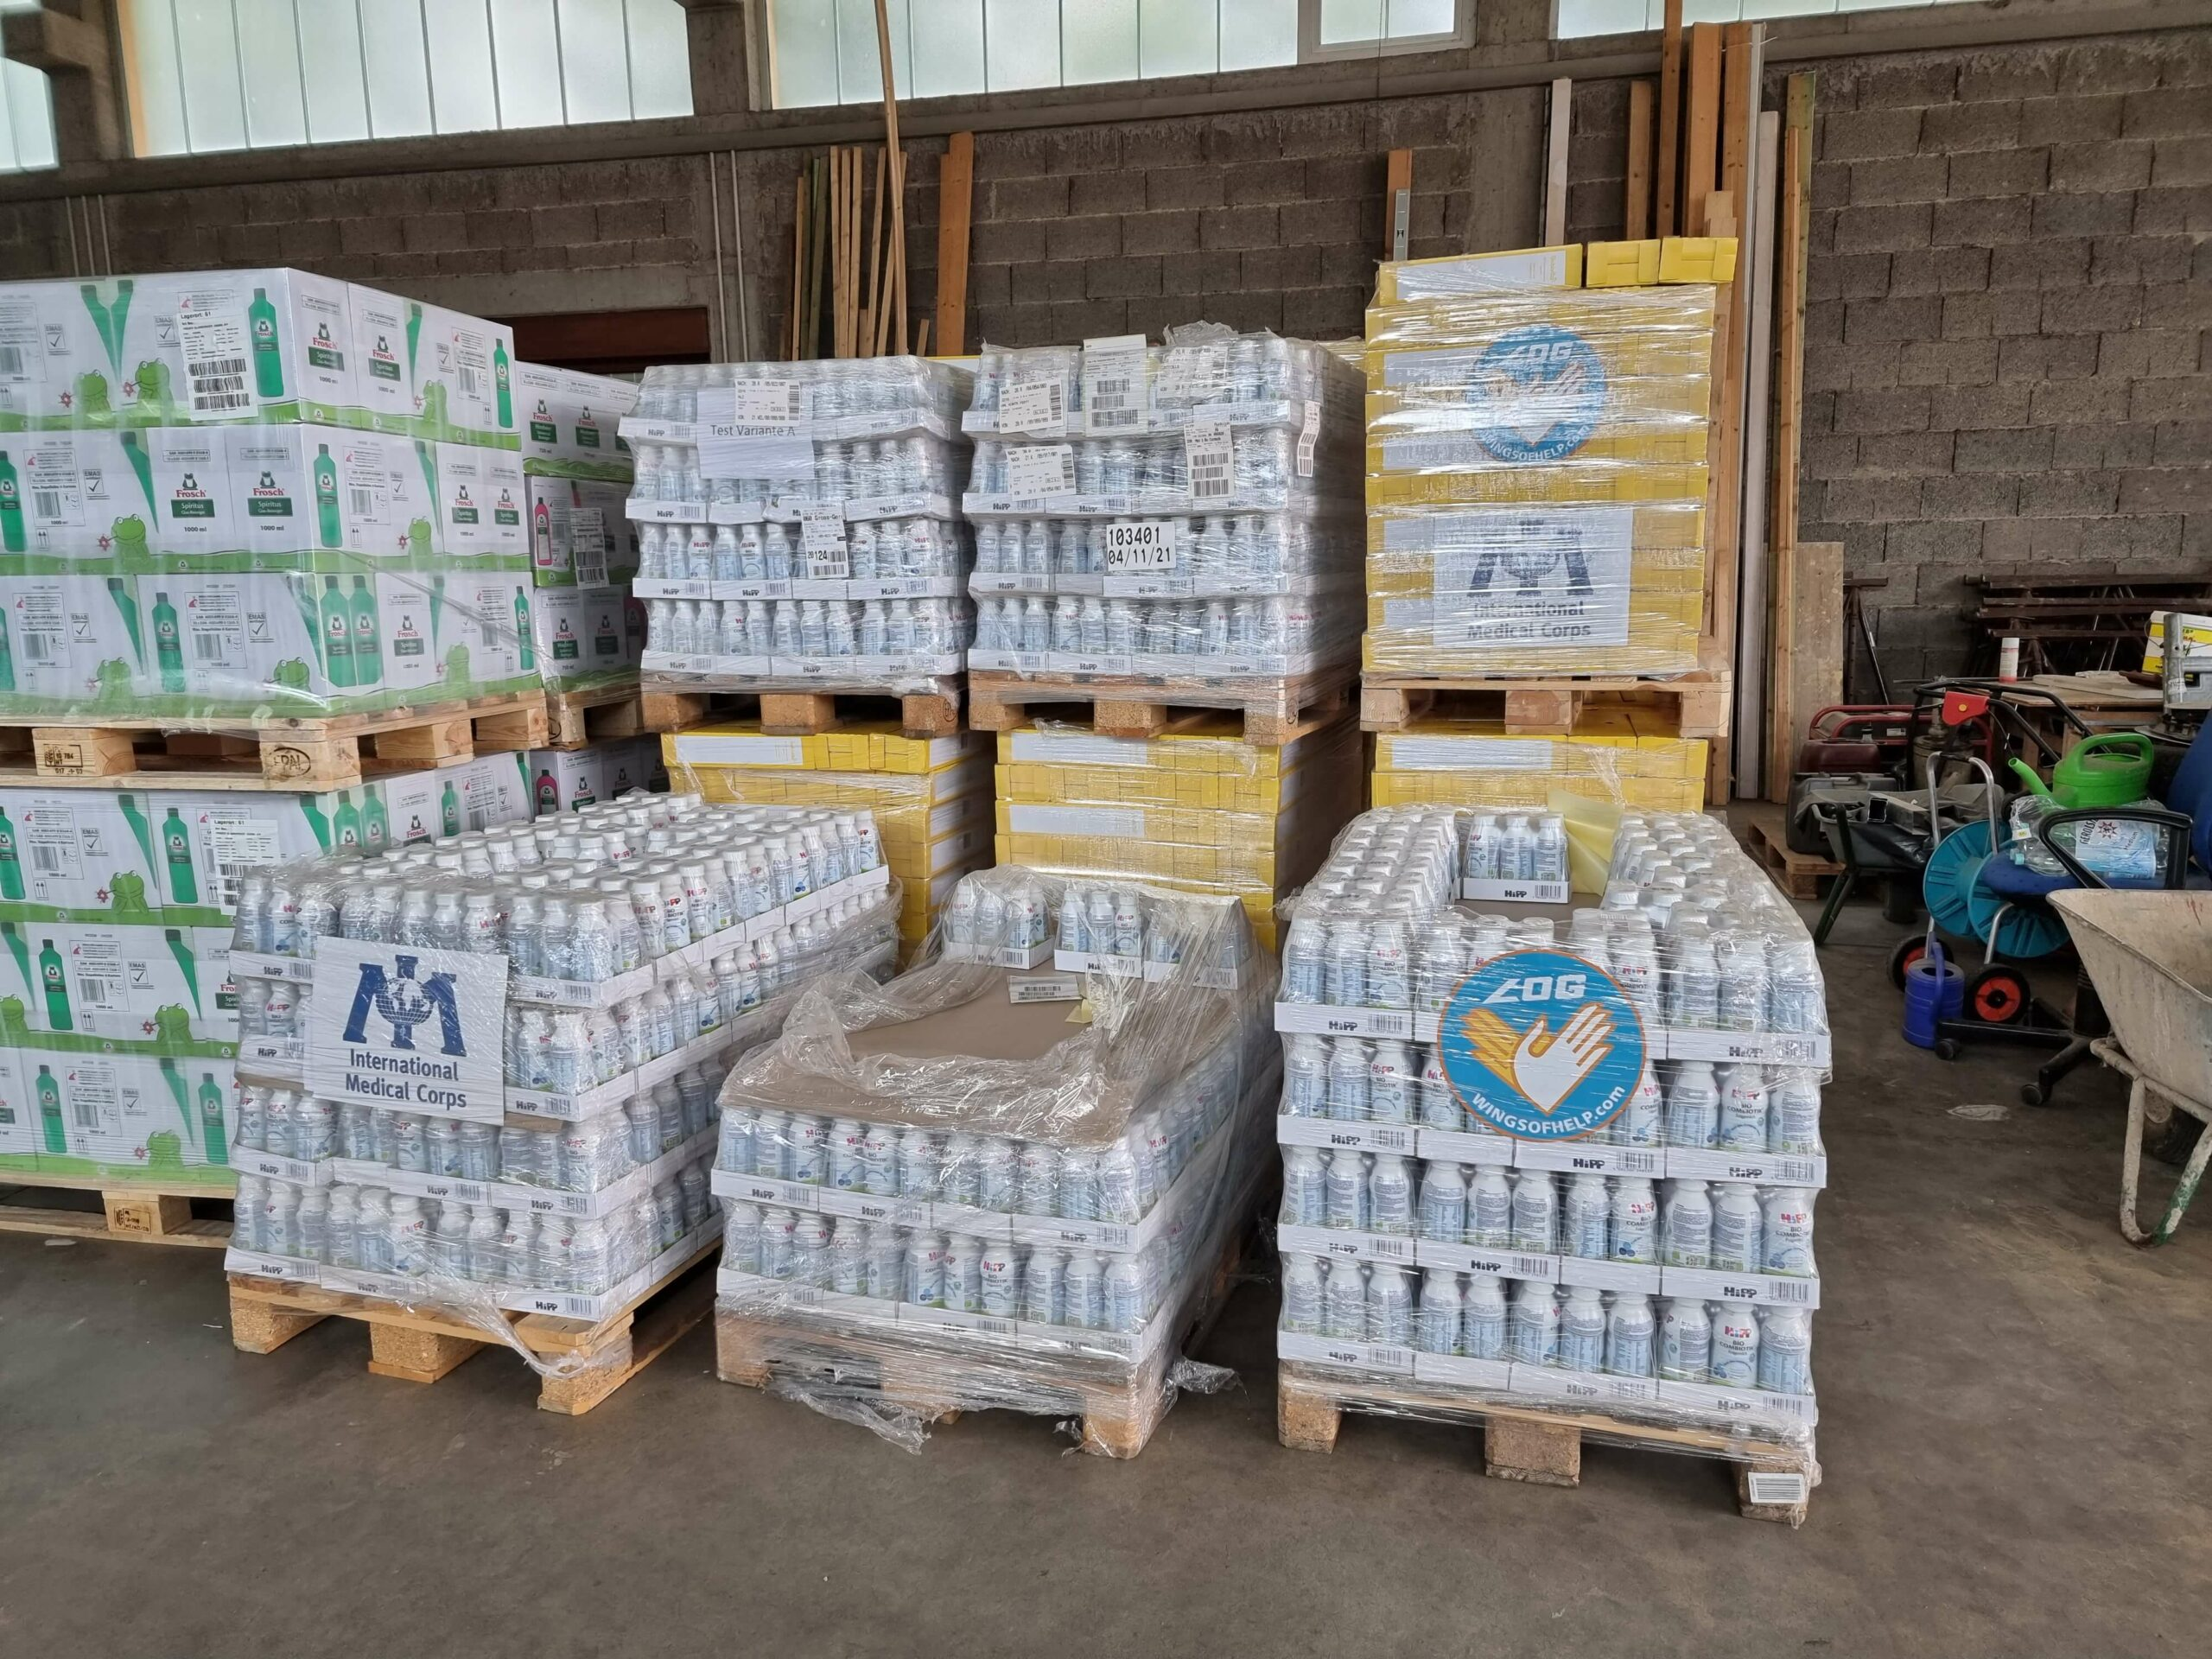 Stock delivered by LoG and International Medical Corps in distribution warehouse in Sinzig.